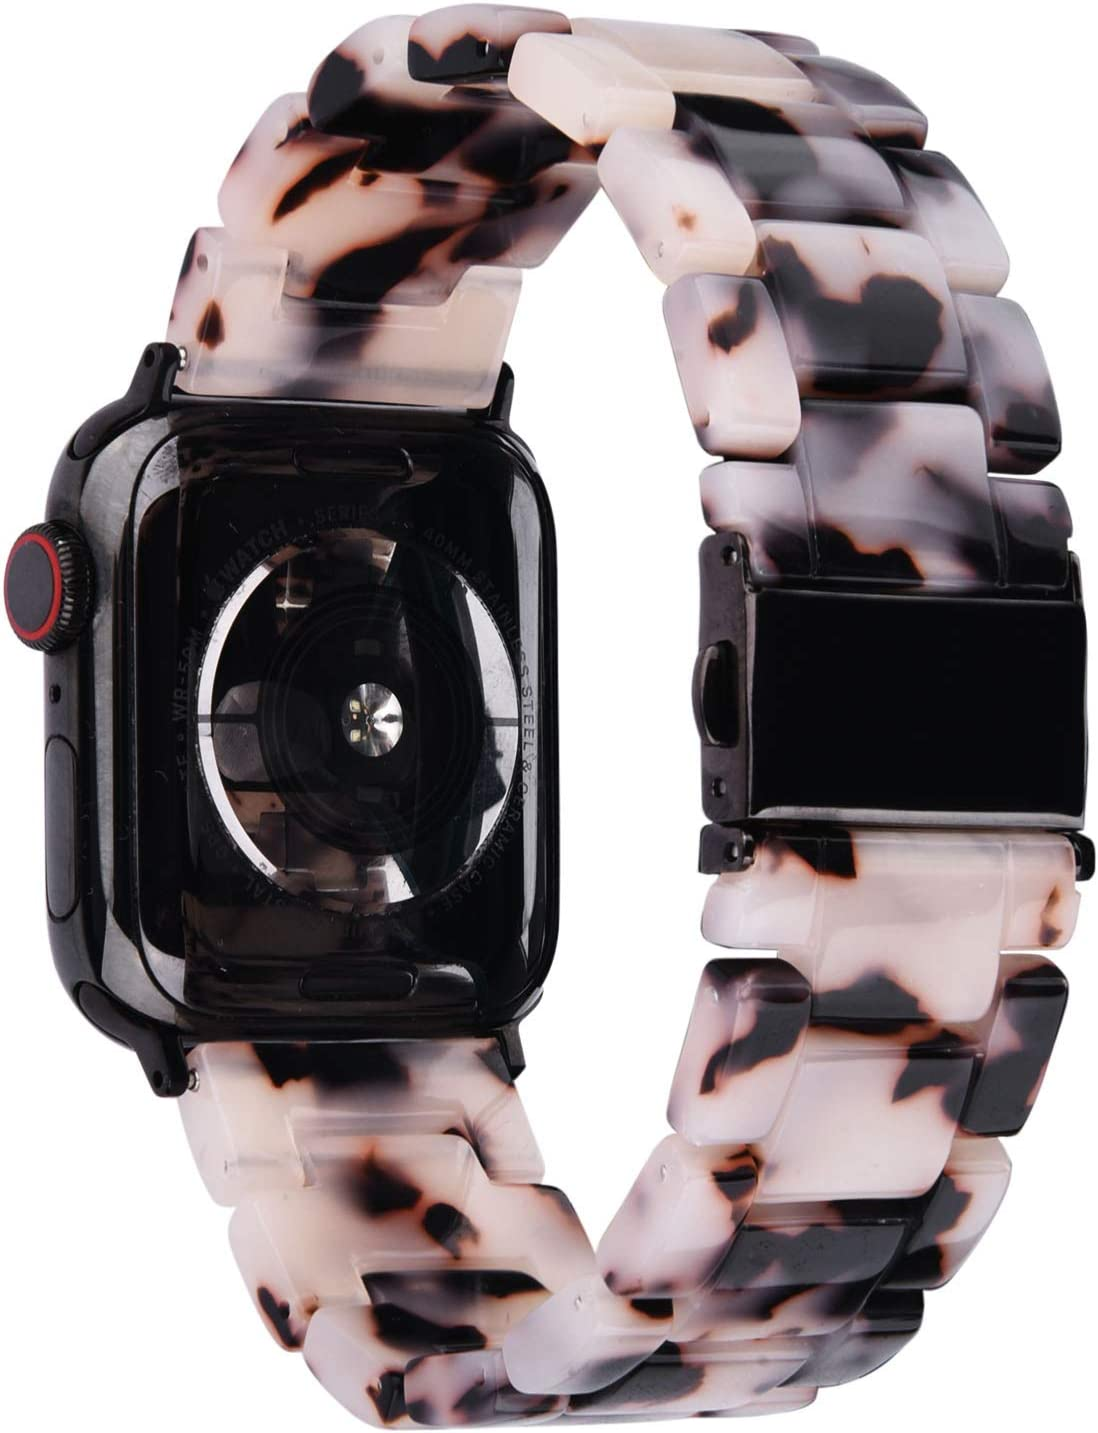 V-MORO Resin Strap Compatible with Apple Watch Band 38mm 40mm Series 5/4/3/2/1 Women Men with Stainless Steel Buckle, Apple iWatch Replacement Wristband Bracelet (Black floral, 38mm/40mm)